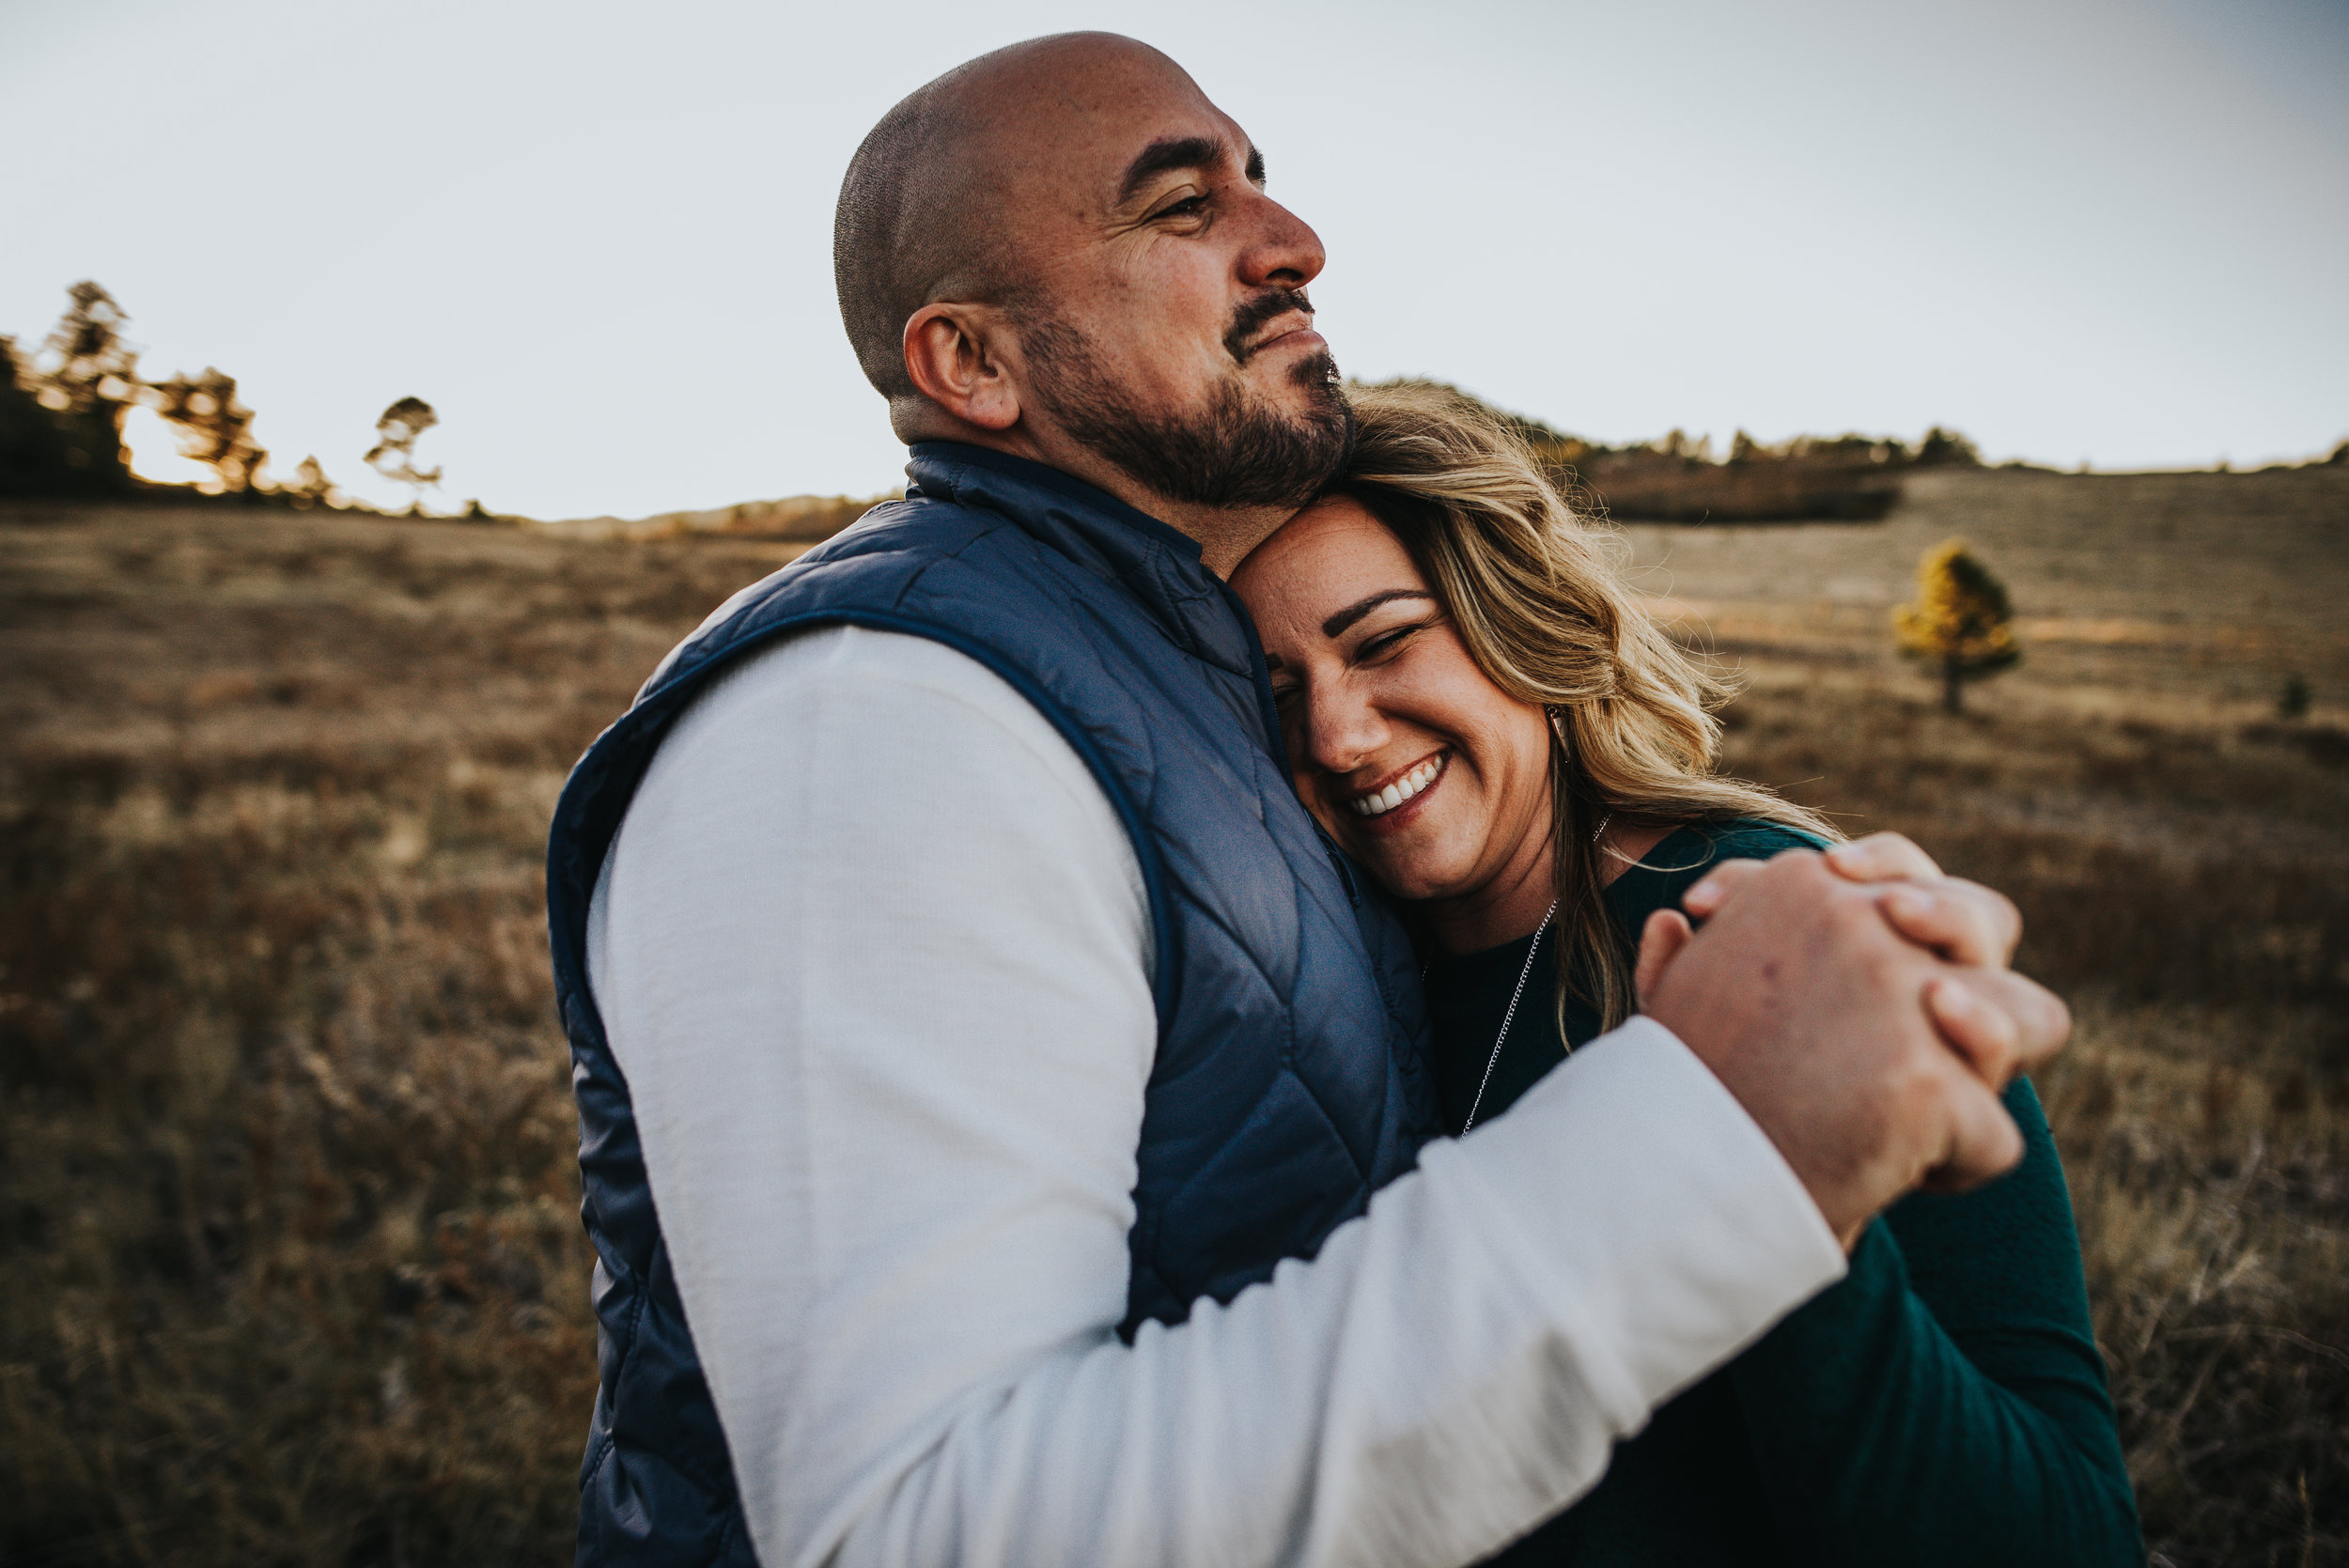 Colorado Family photographer Jessica Montoya has her own couples photography session with Wild Prairie Photography.